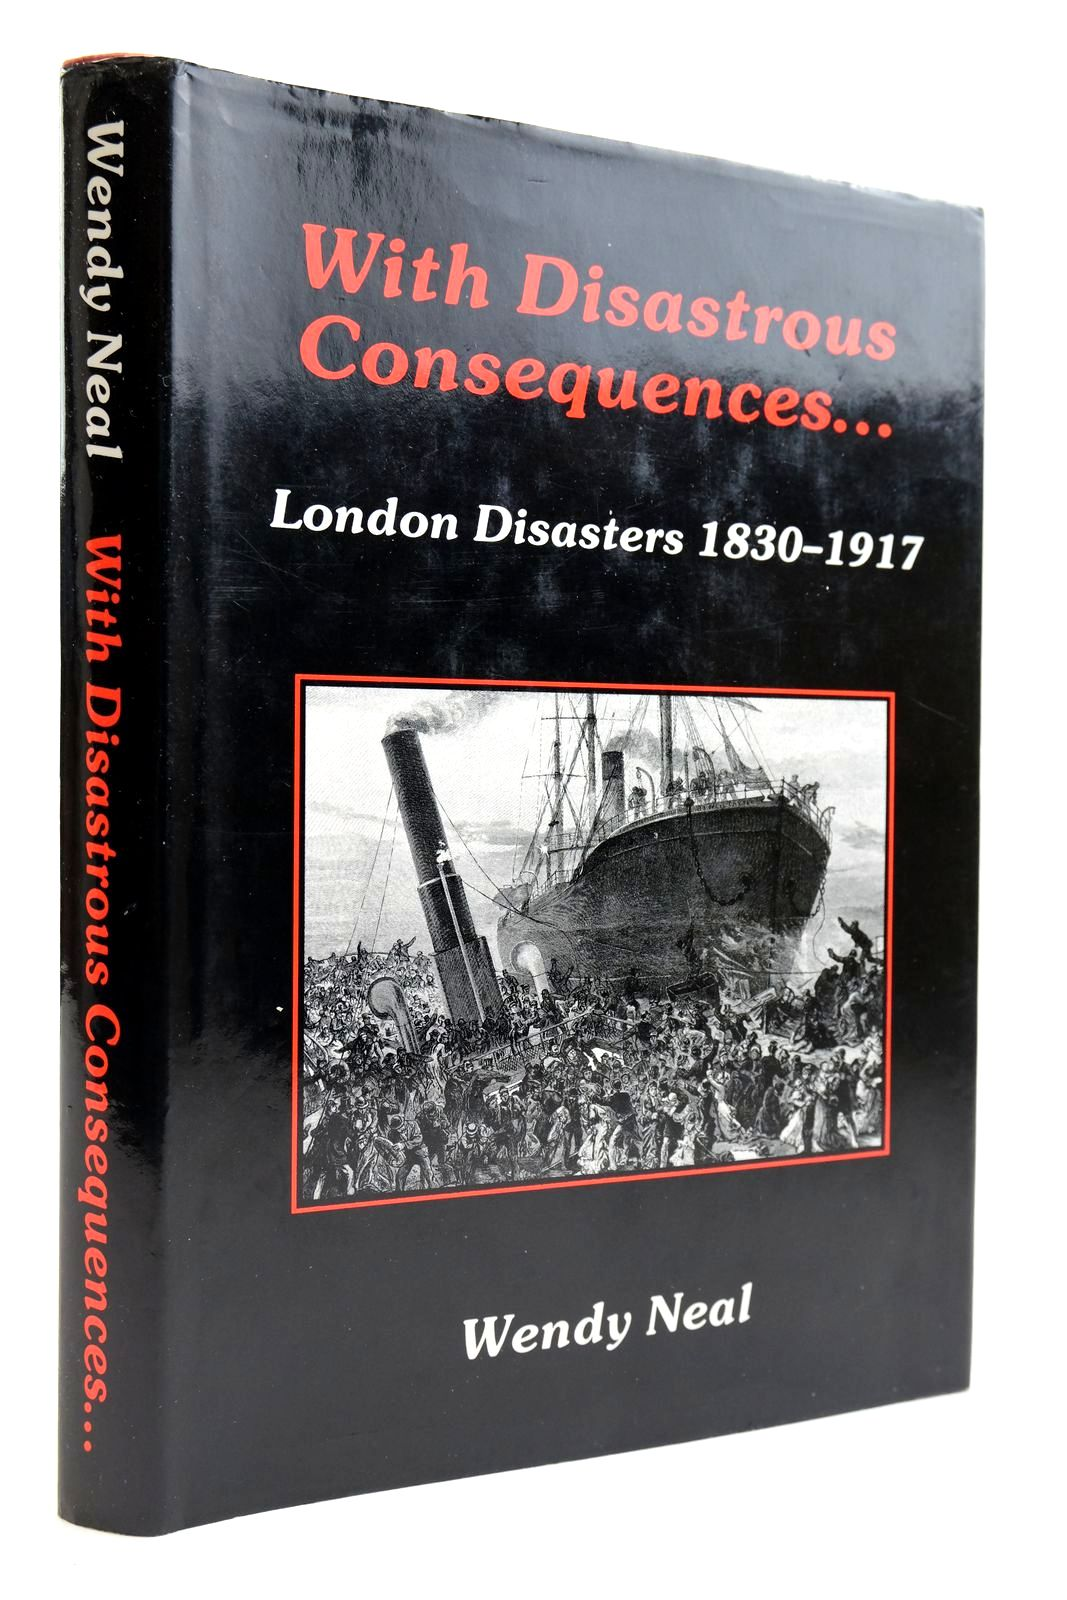 Photo of WITH DISASTROUS CONSEQUENCES: LONDON DISASTERS 1830-1917 written by Neal, Wendy published by Hisarlik Press (STOCK CODE: 2133920)  for sale by Stella & Rose's Books